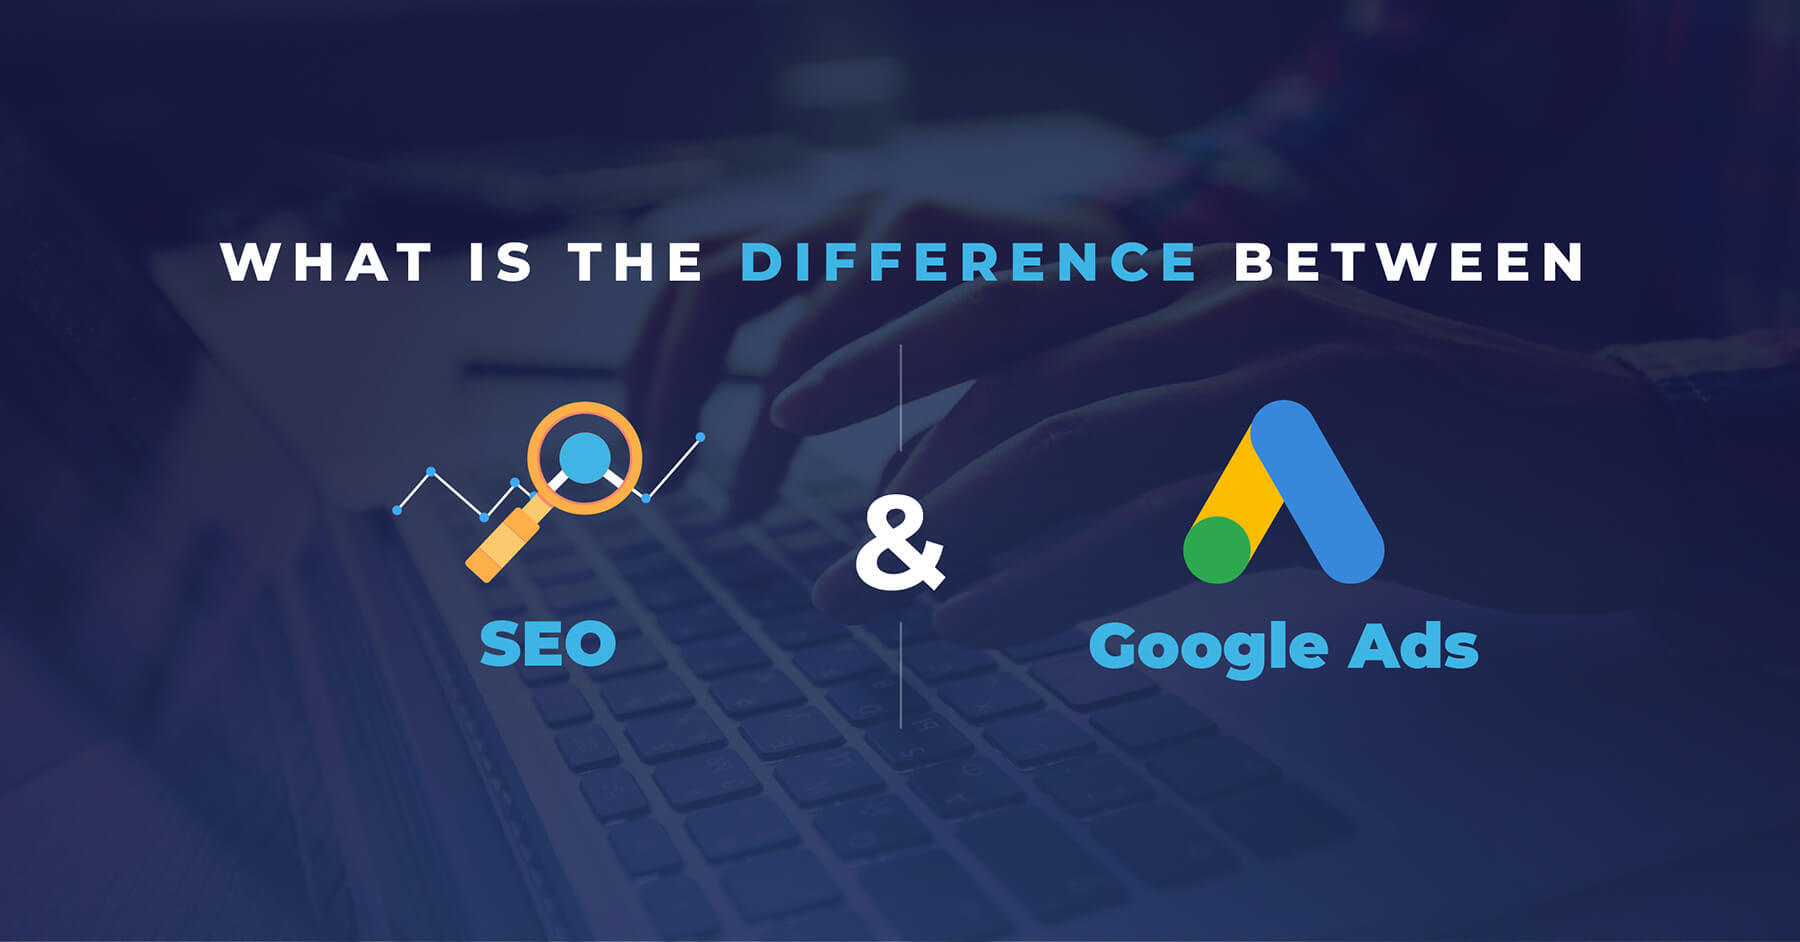 Image showing what's the difference between google ads and SEO?